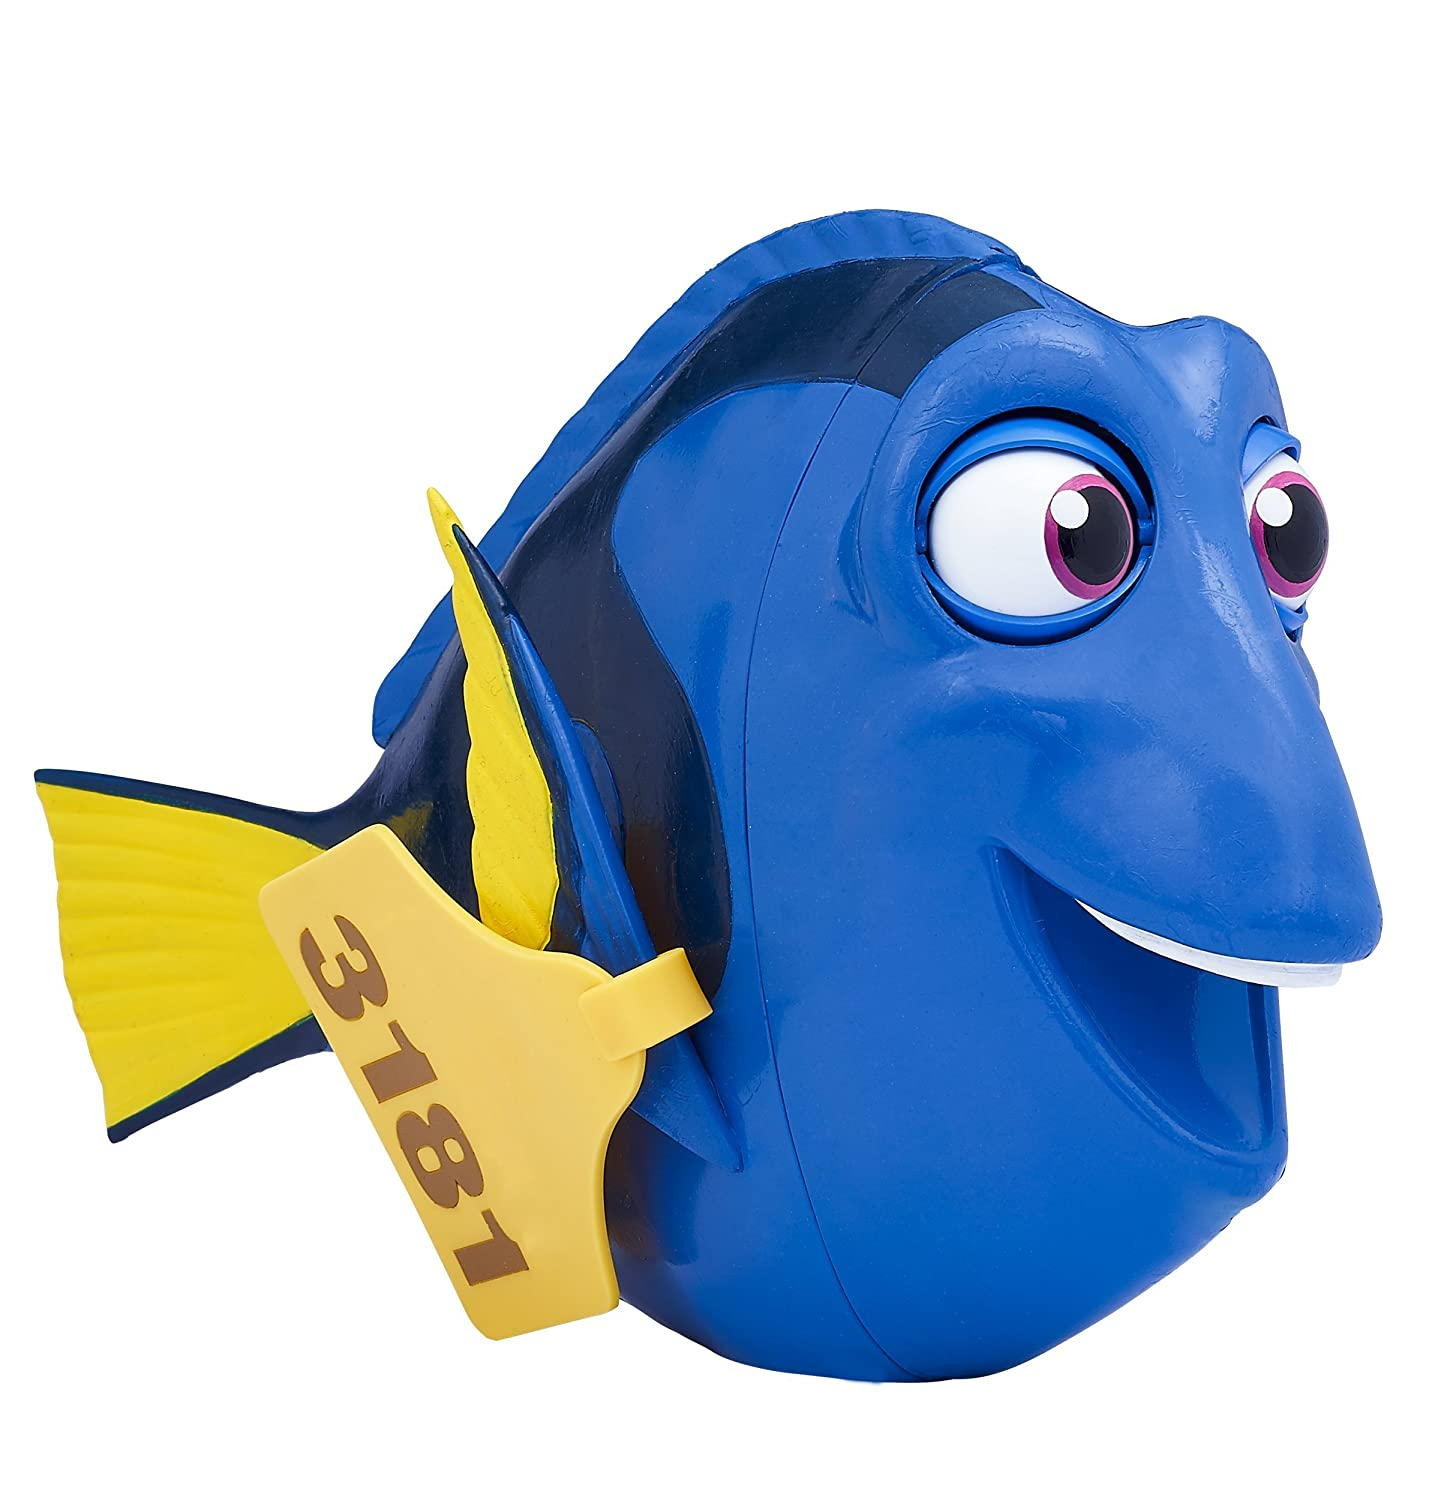 My Friend Dory Toy Only $7.49.